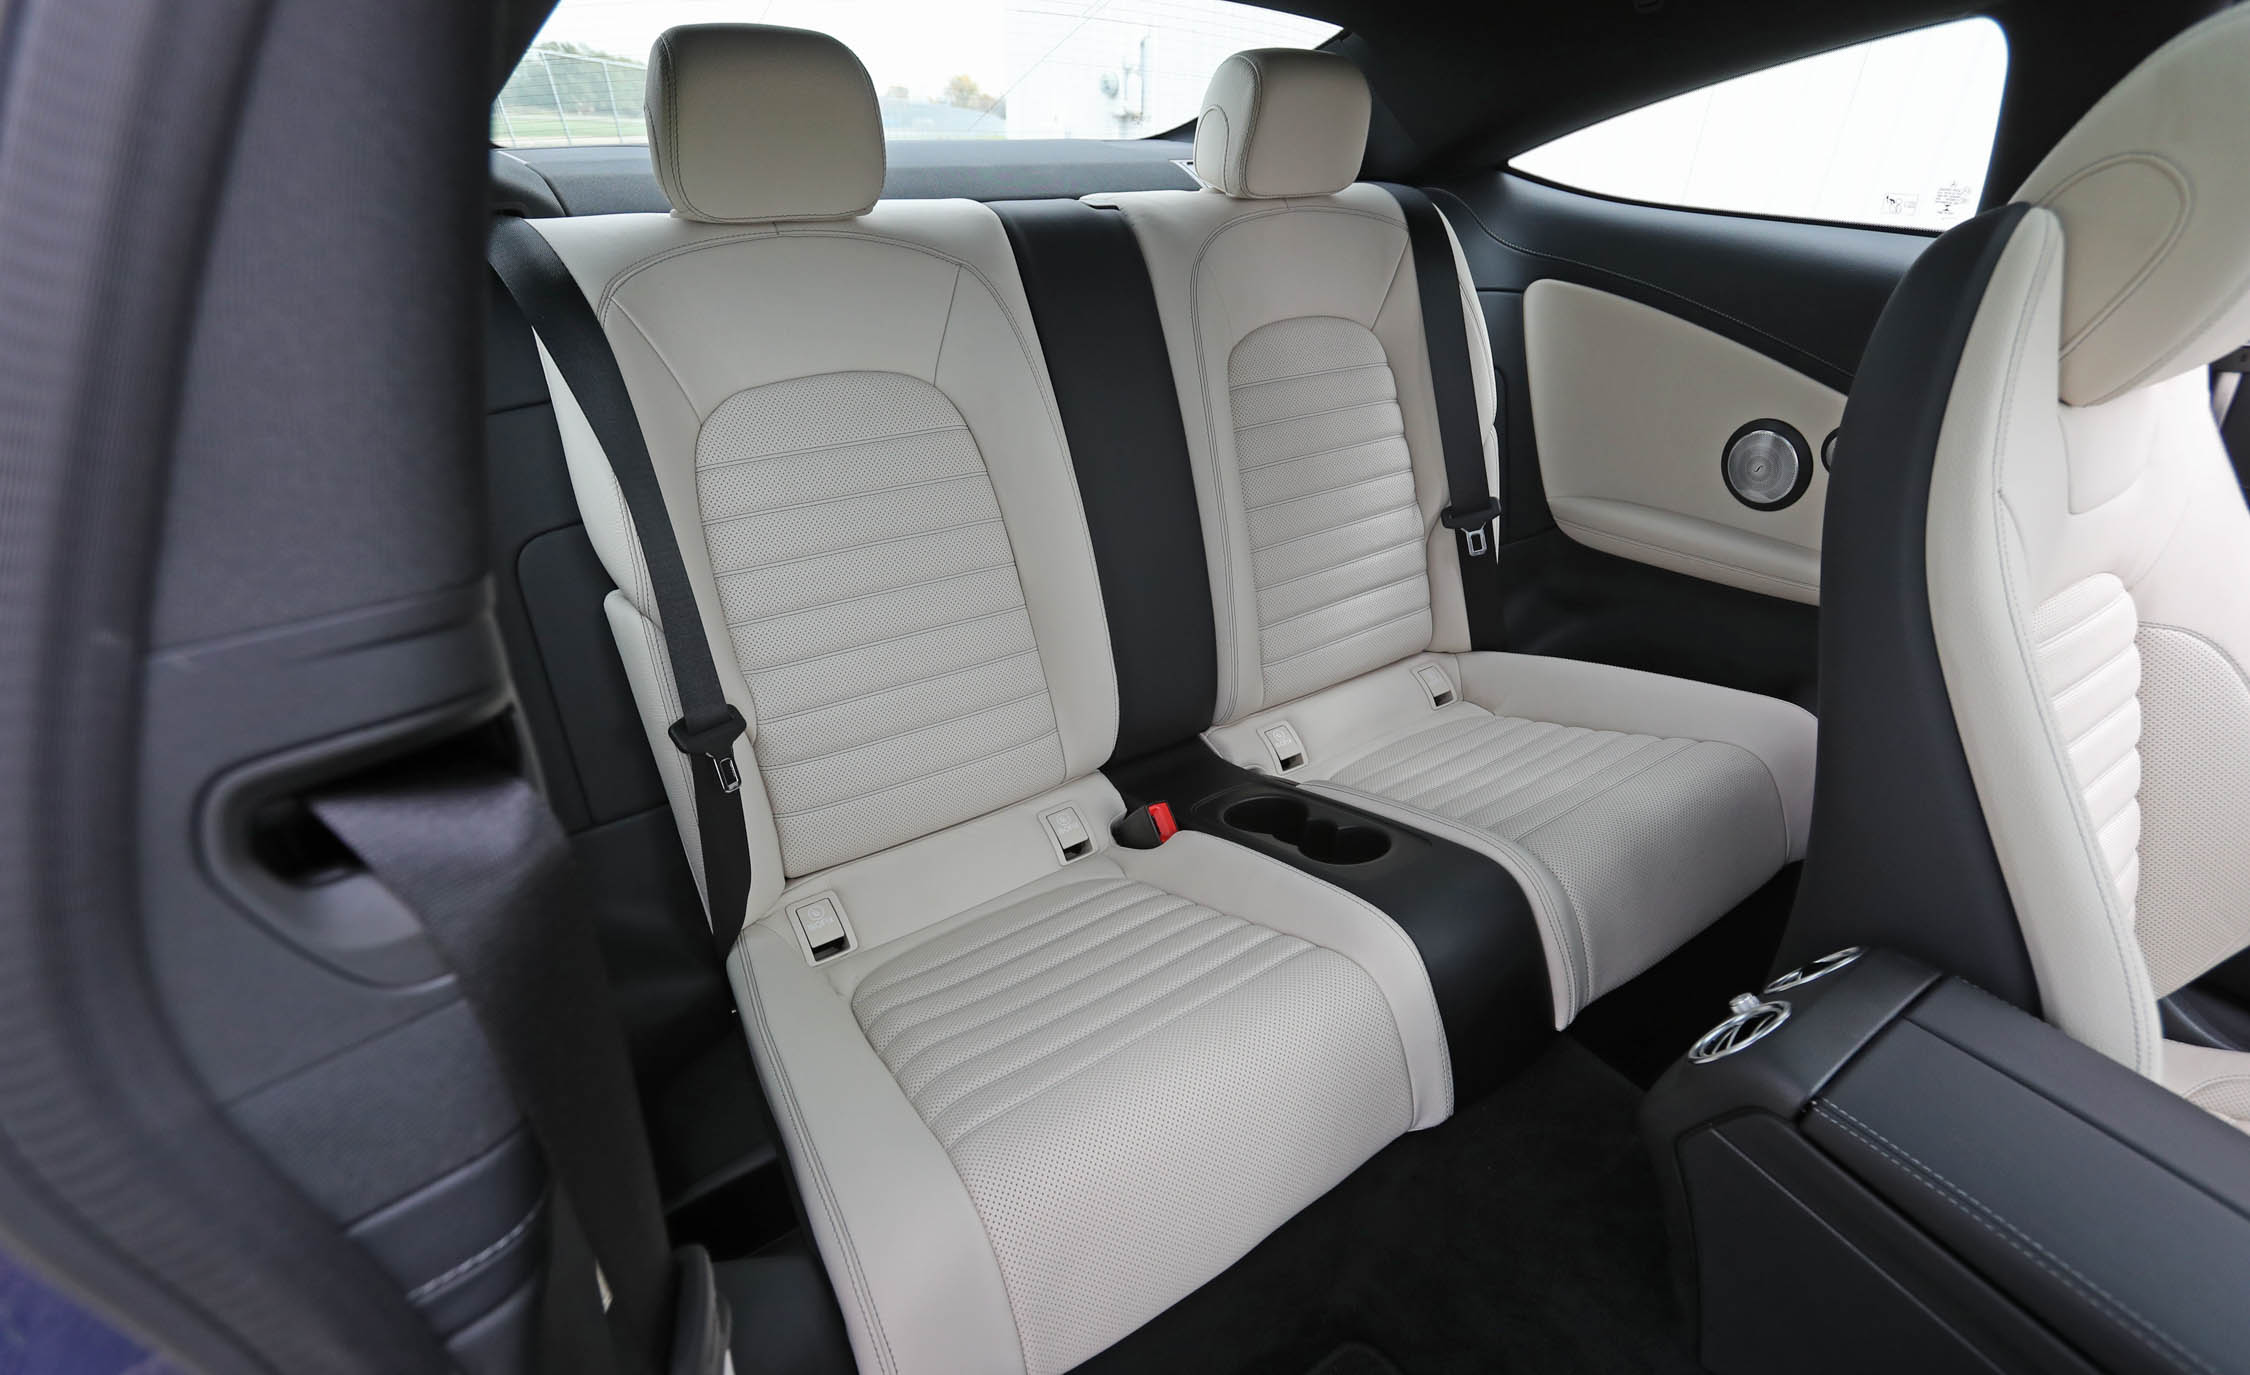 2017 Mercedes Benz C300 4MATIC Coupe Interior Seats Rear (View 12 of 44)